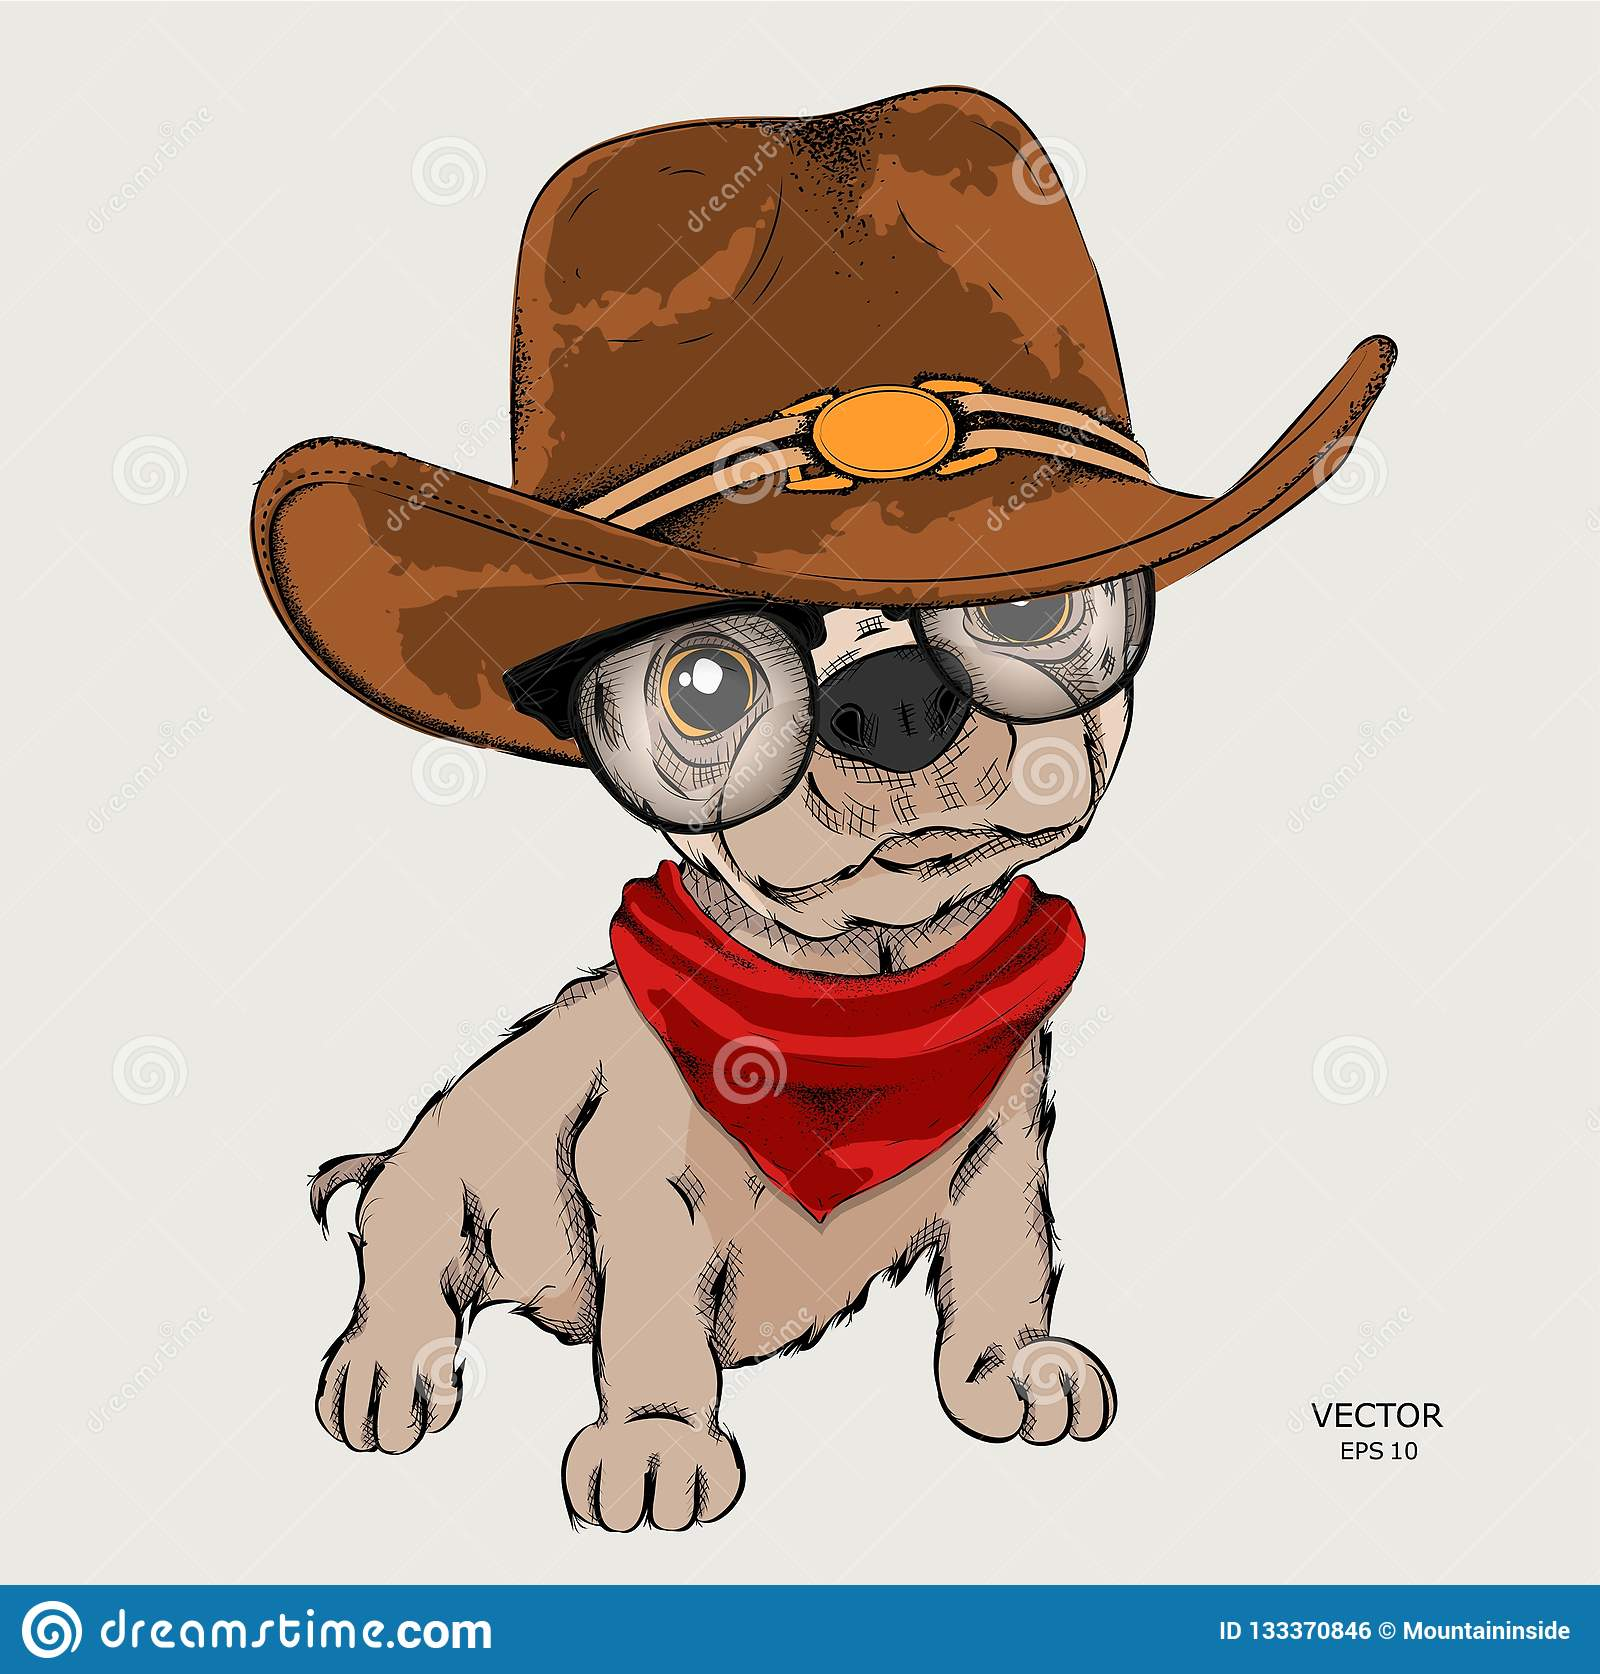 A Cool Funny Dog In A Cowboy Hat. Vector Illustration Stock Vector ... ed9e716ad49